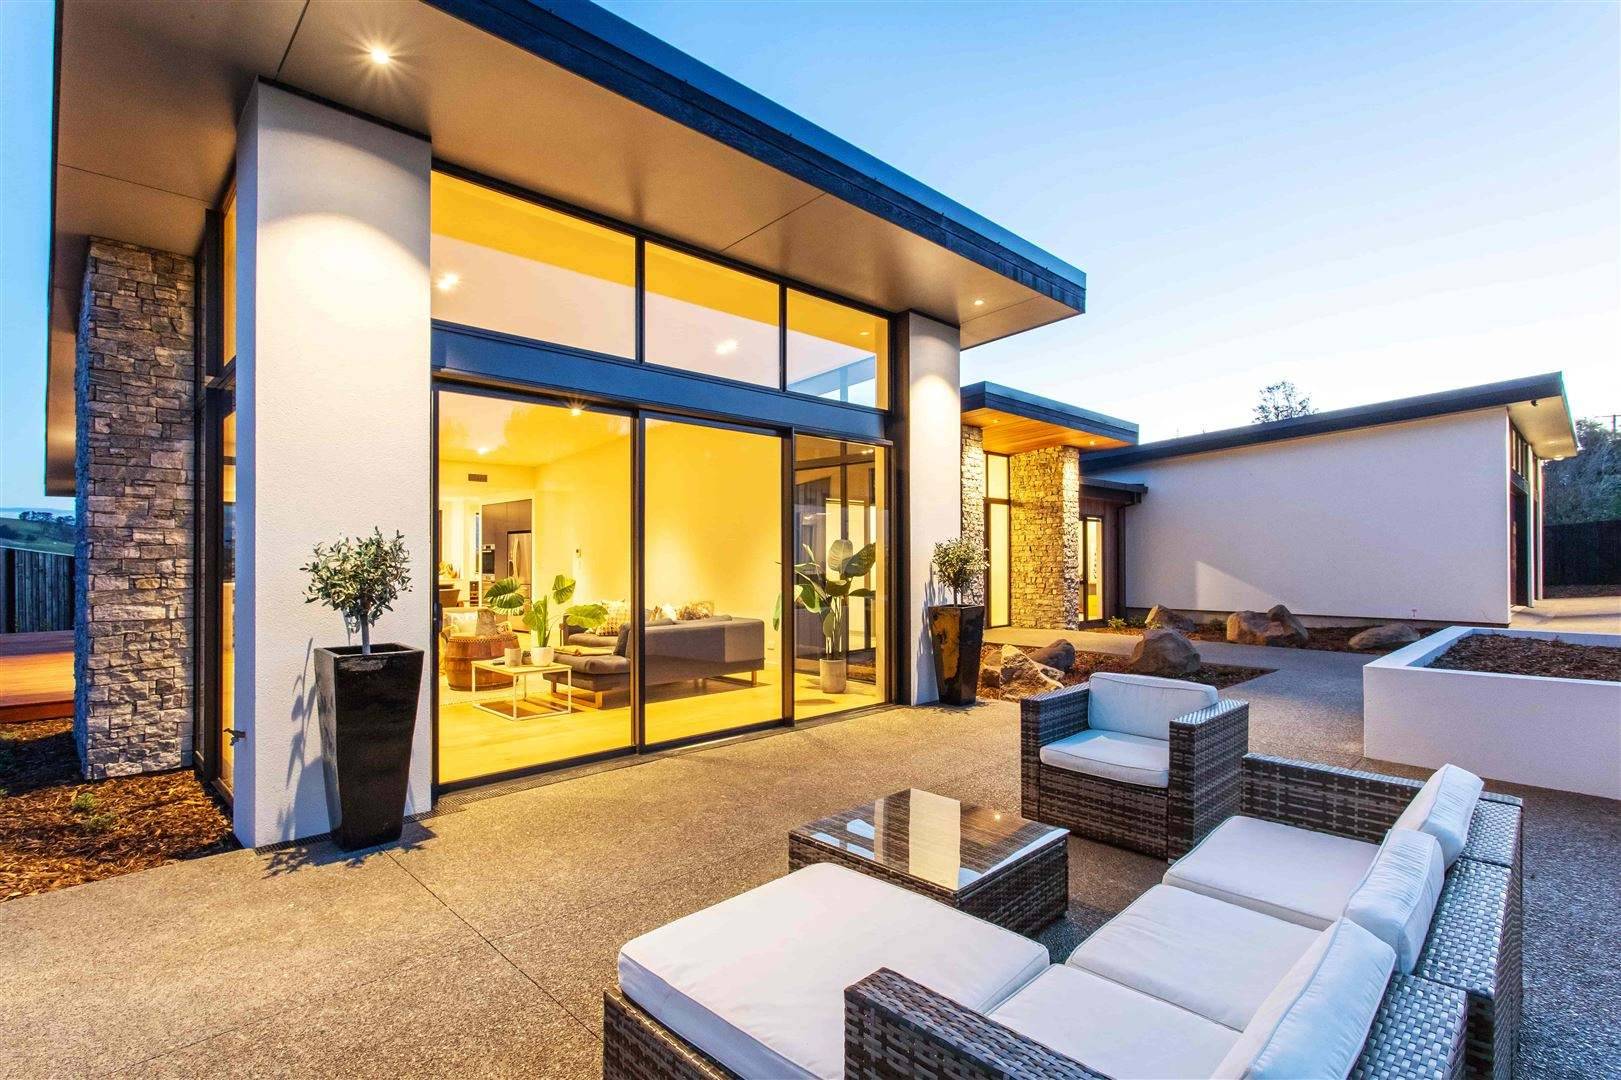 Kennedys Bush 4房 Stunning New Home With Sweeping Views